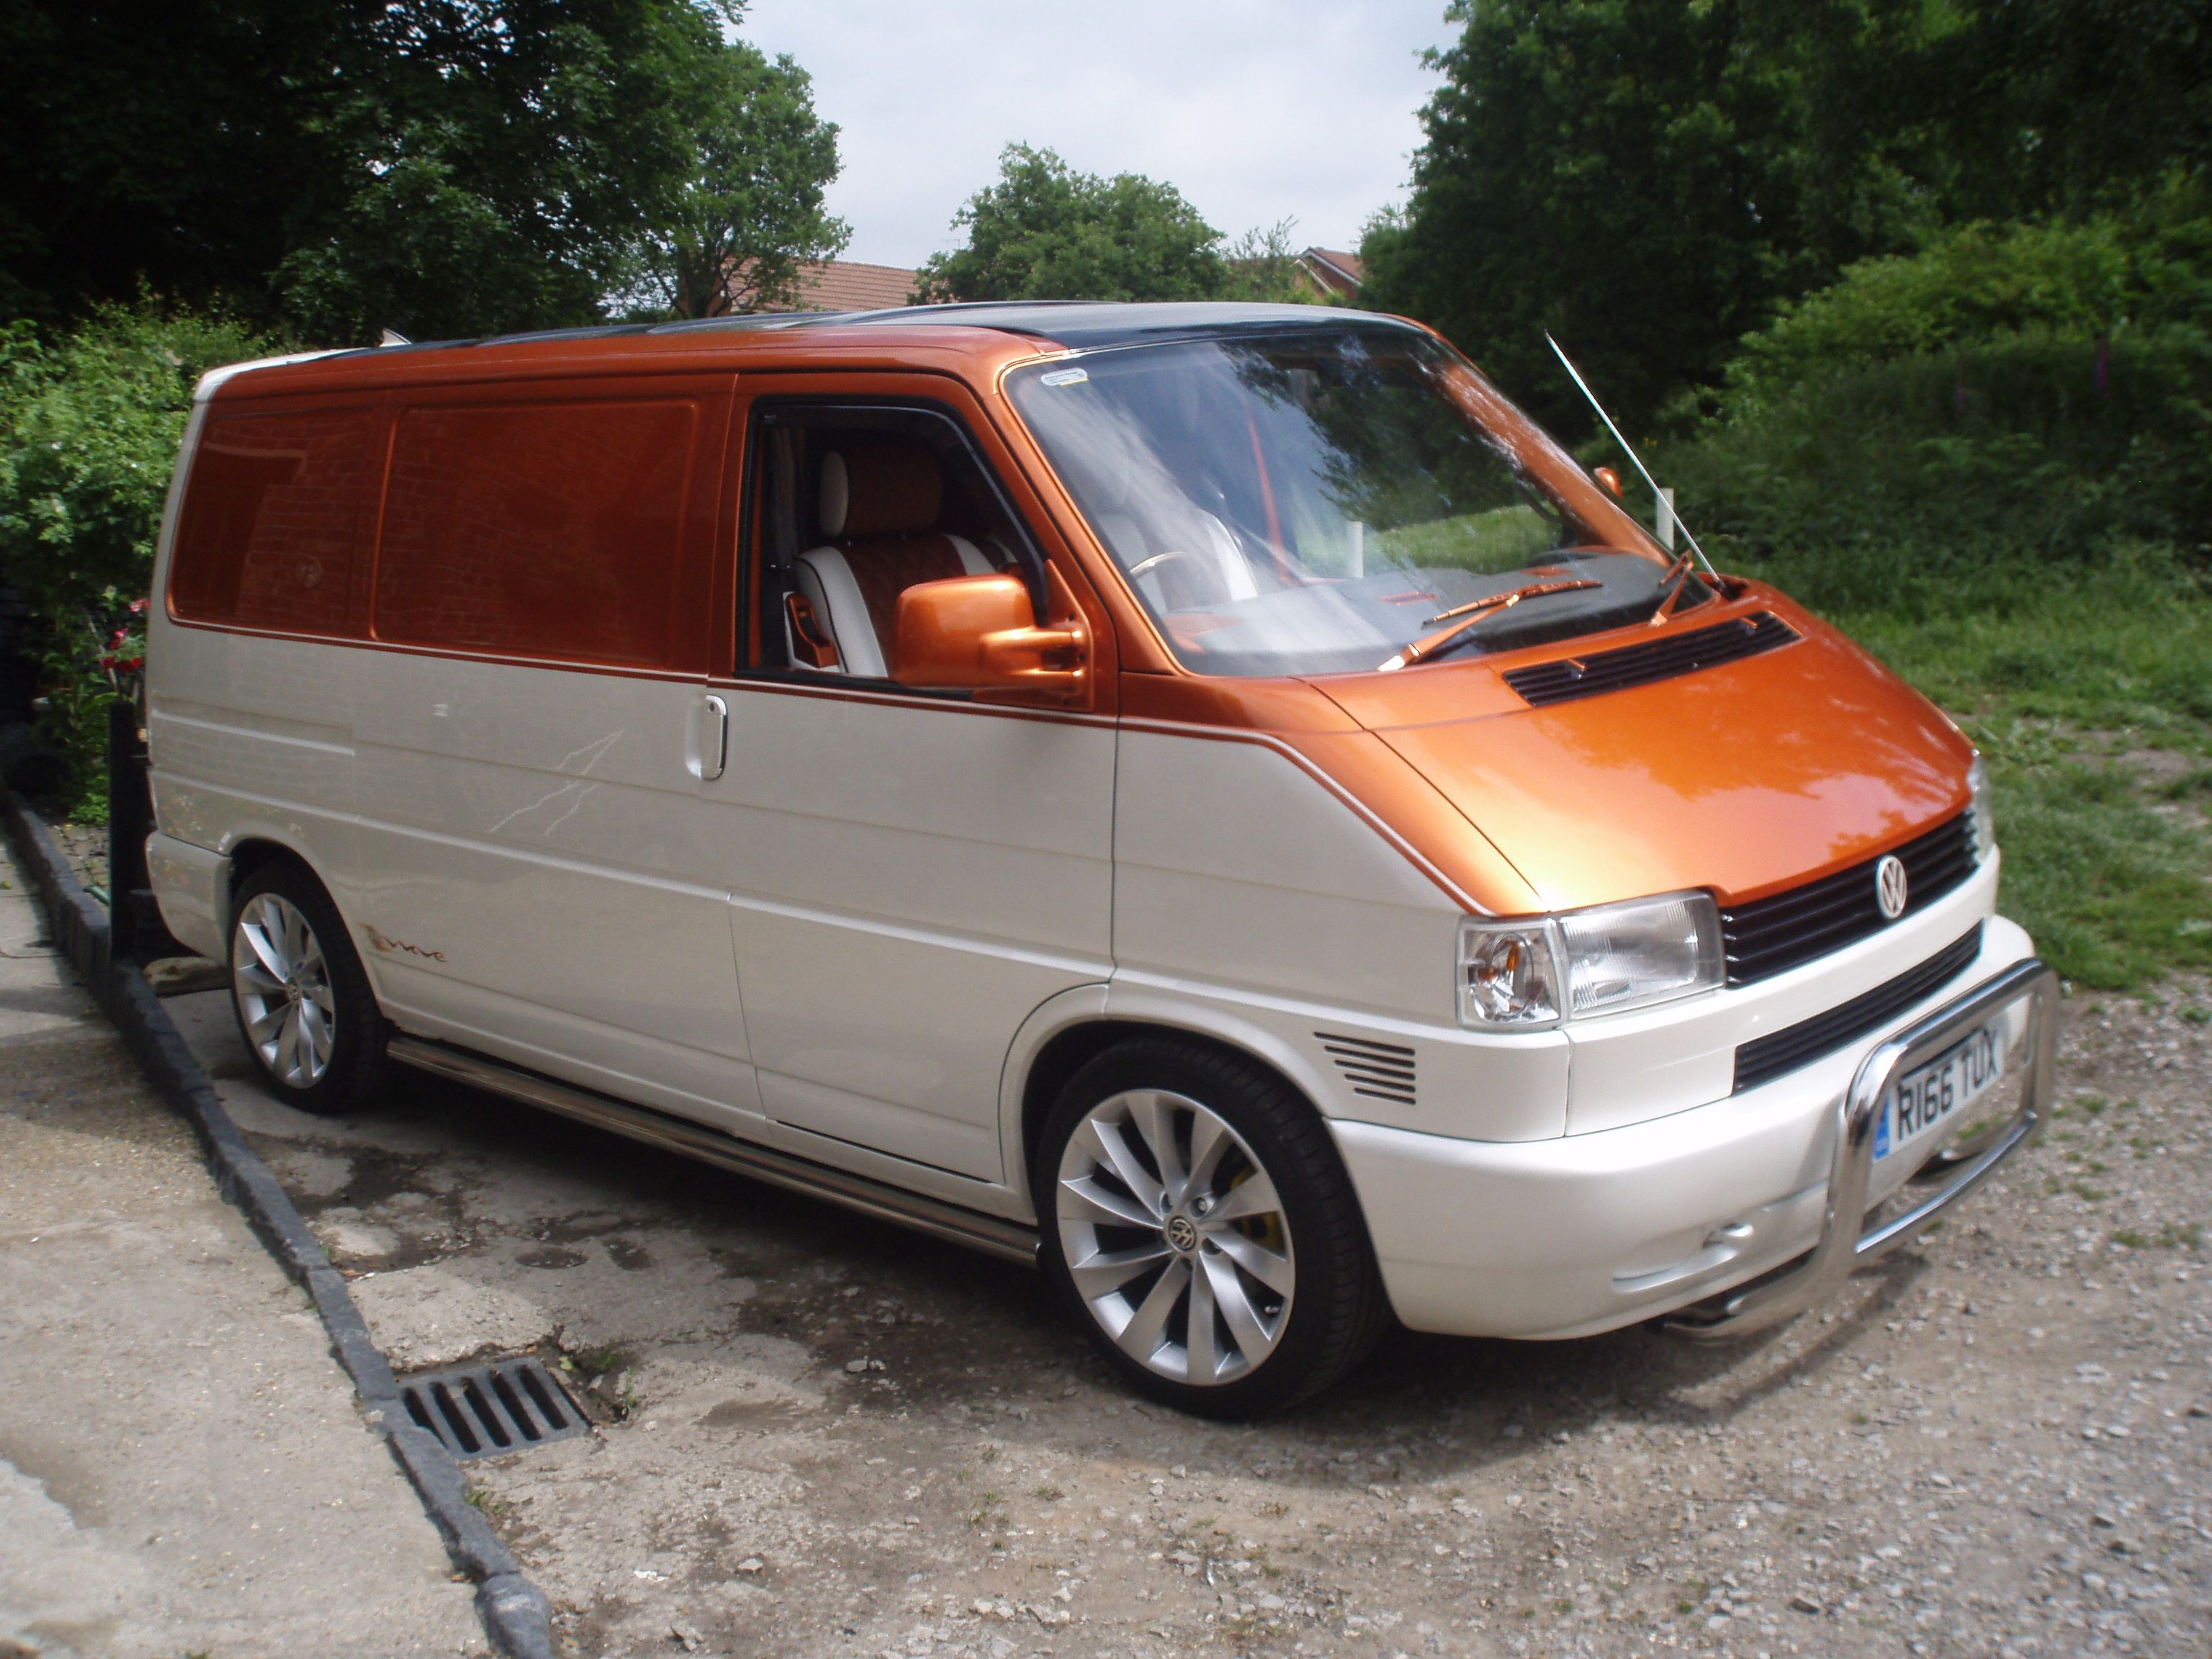 vw t4 transurfer van custom paint job house of kolor snow white pearl cinnamon orange pearl. Black Bedroom Furniture Sets. Home Design Ideas